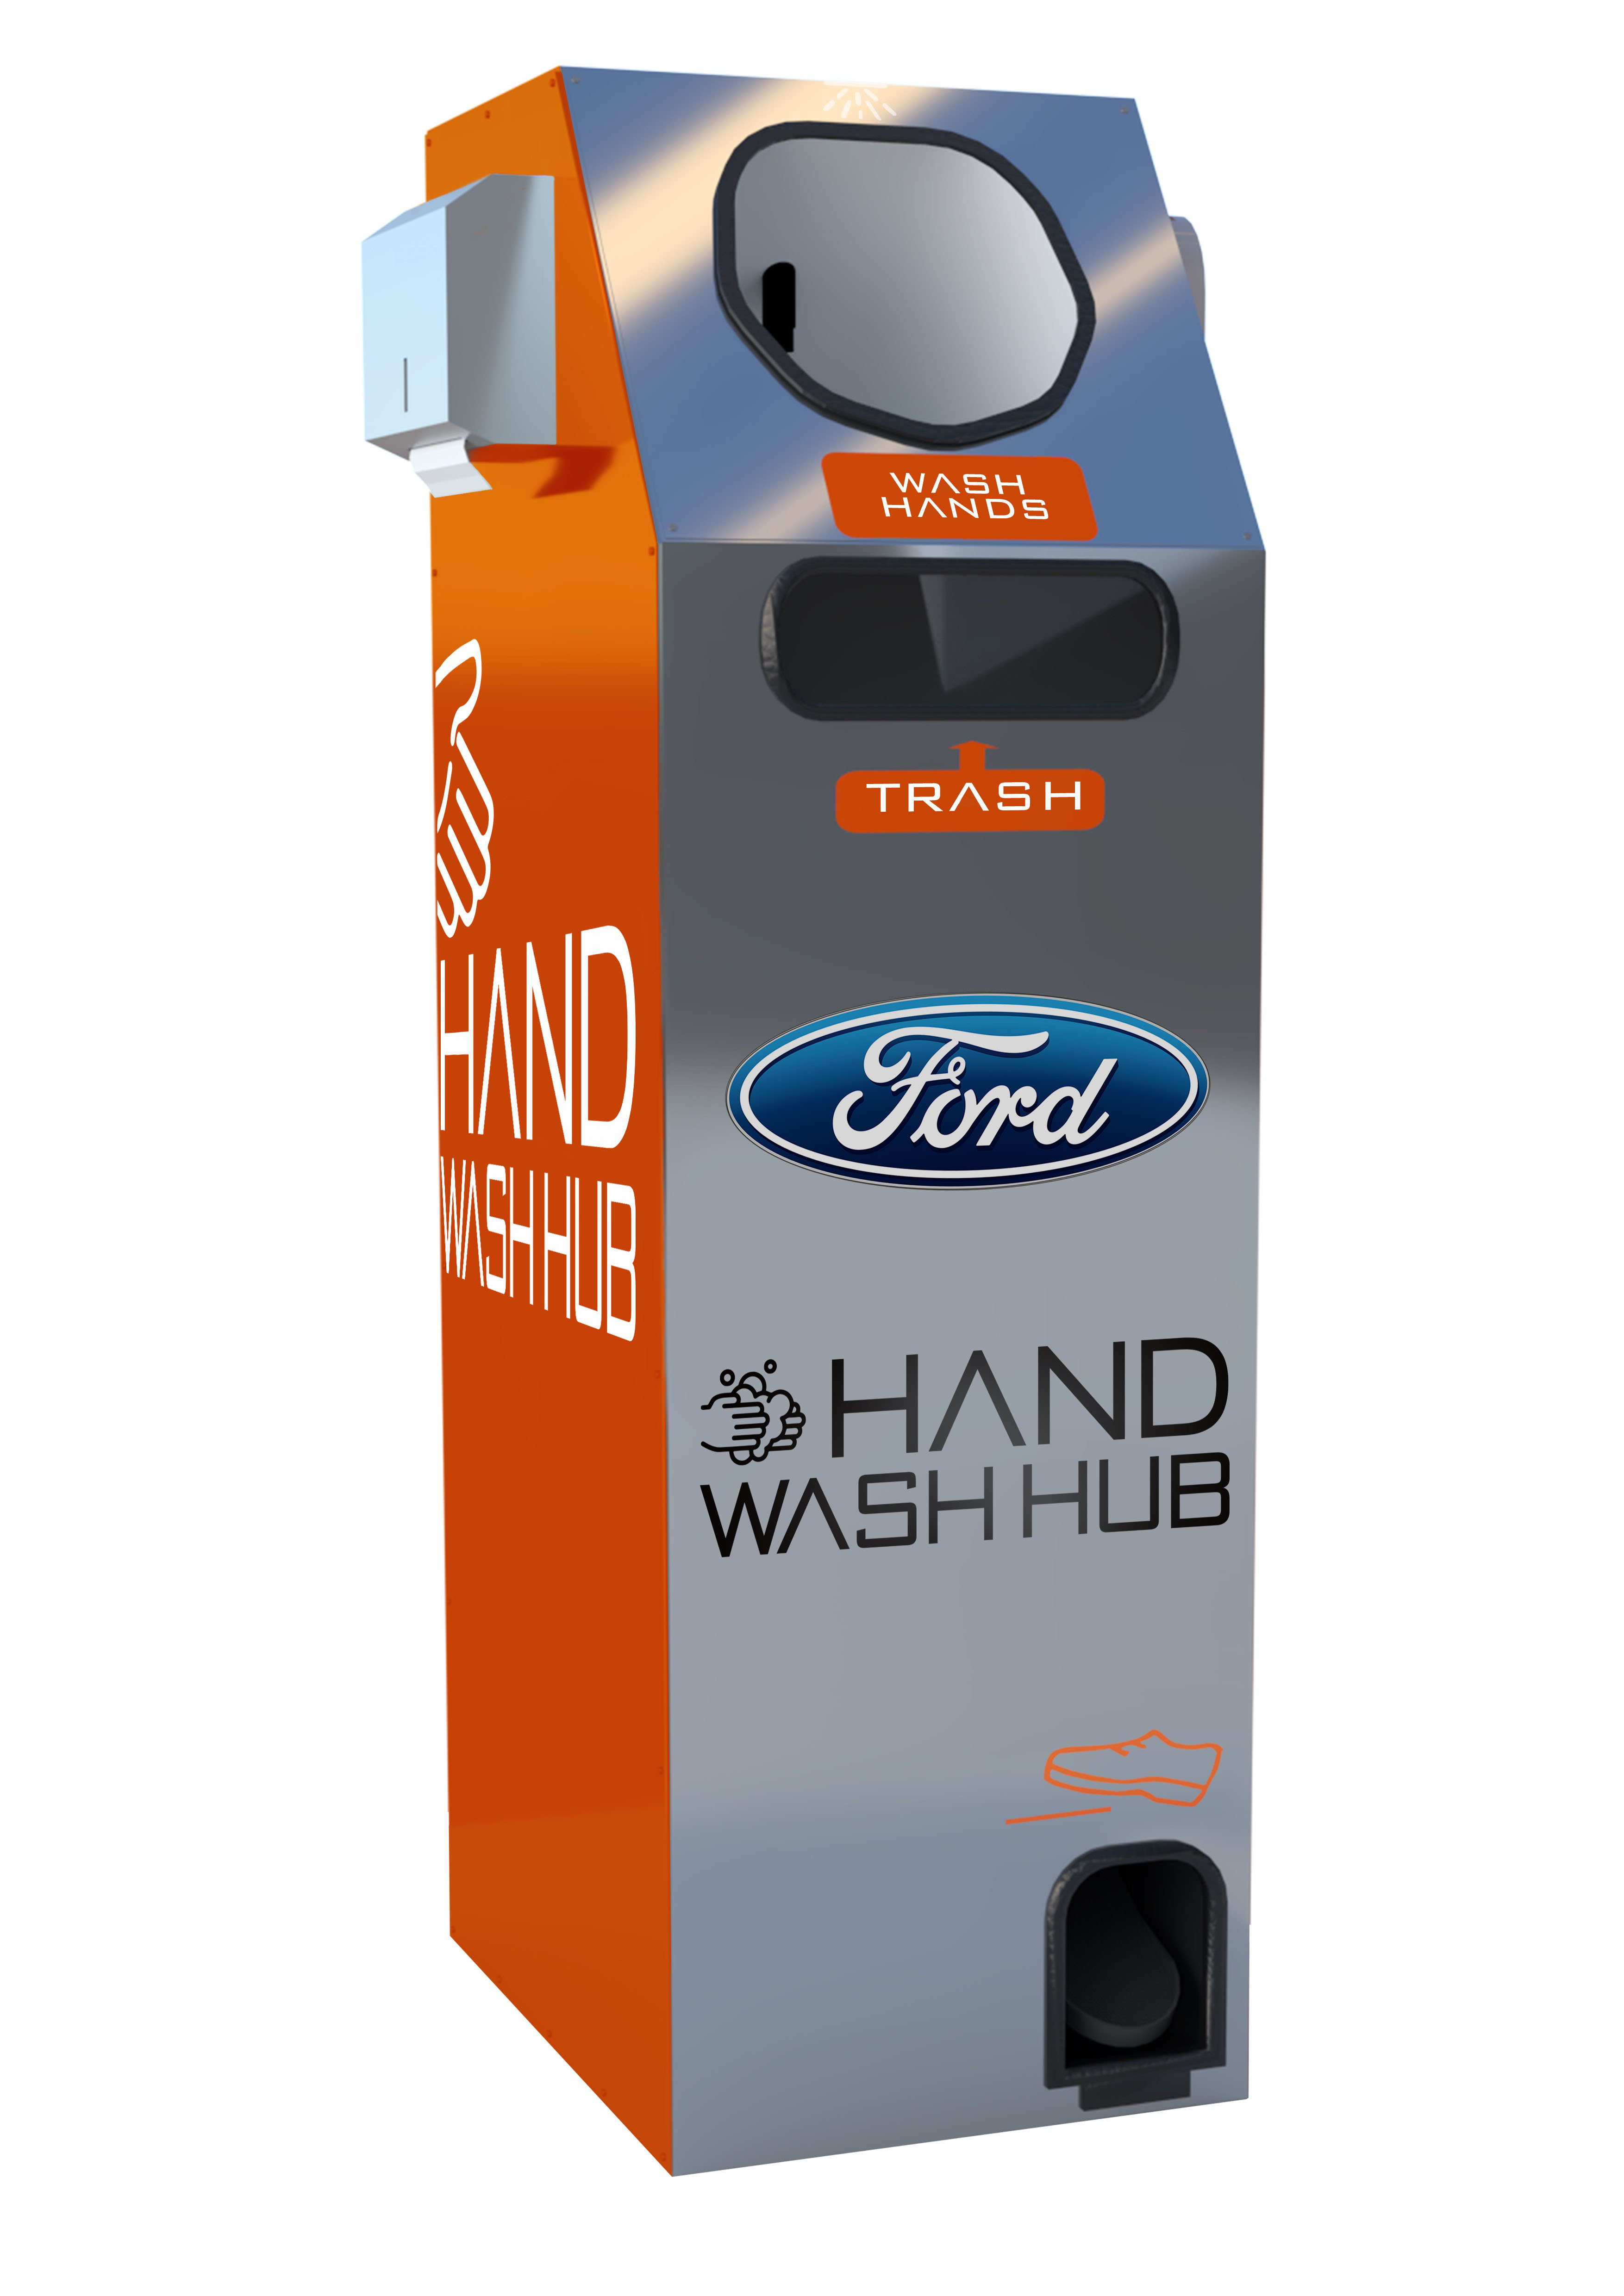 Hand Wash Hand Ford